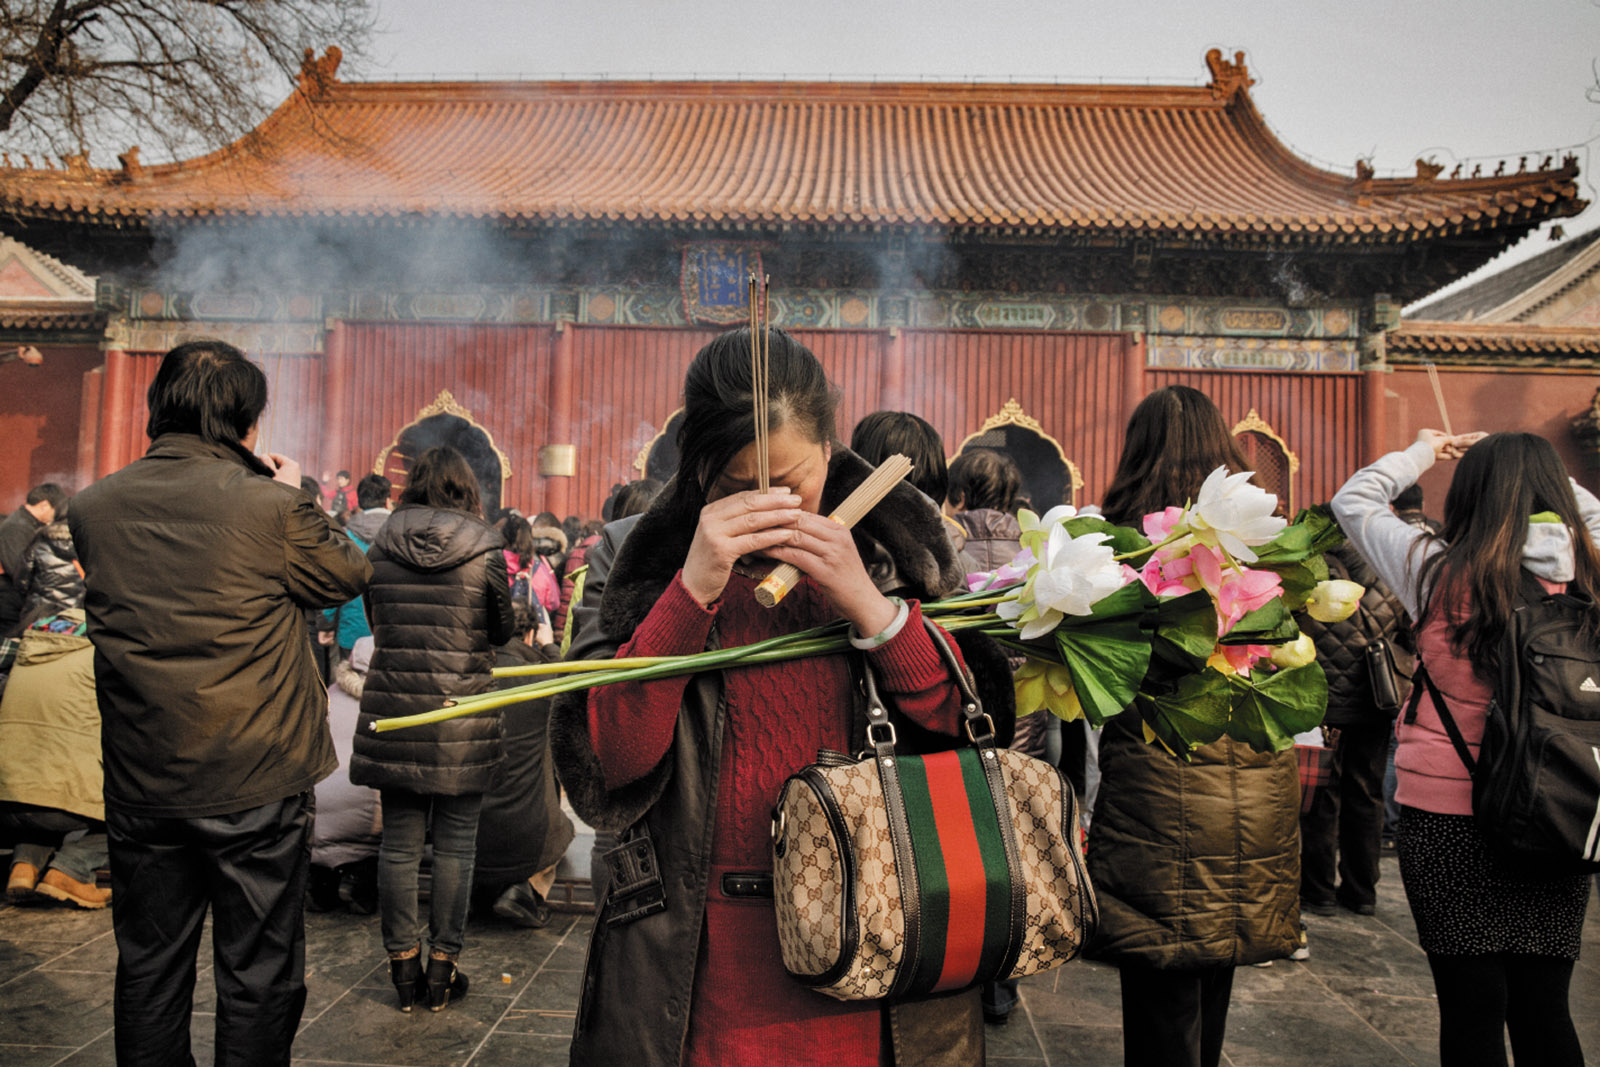 Worshipers at the Tibetan Buddhist Lama Temple in central Beijing, March 2014